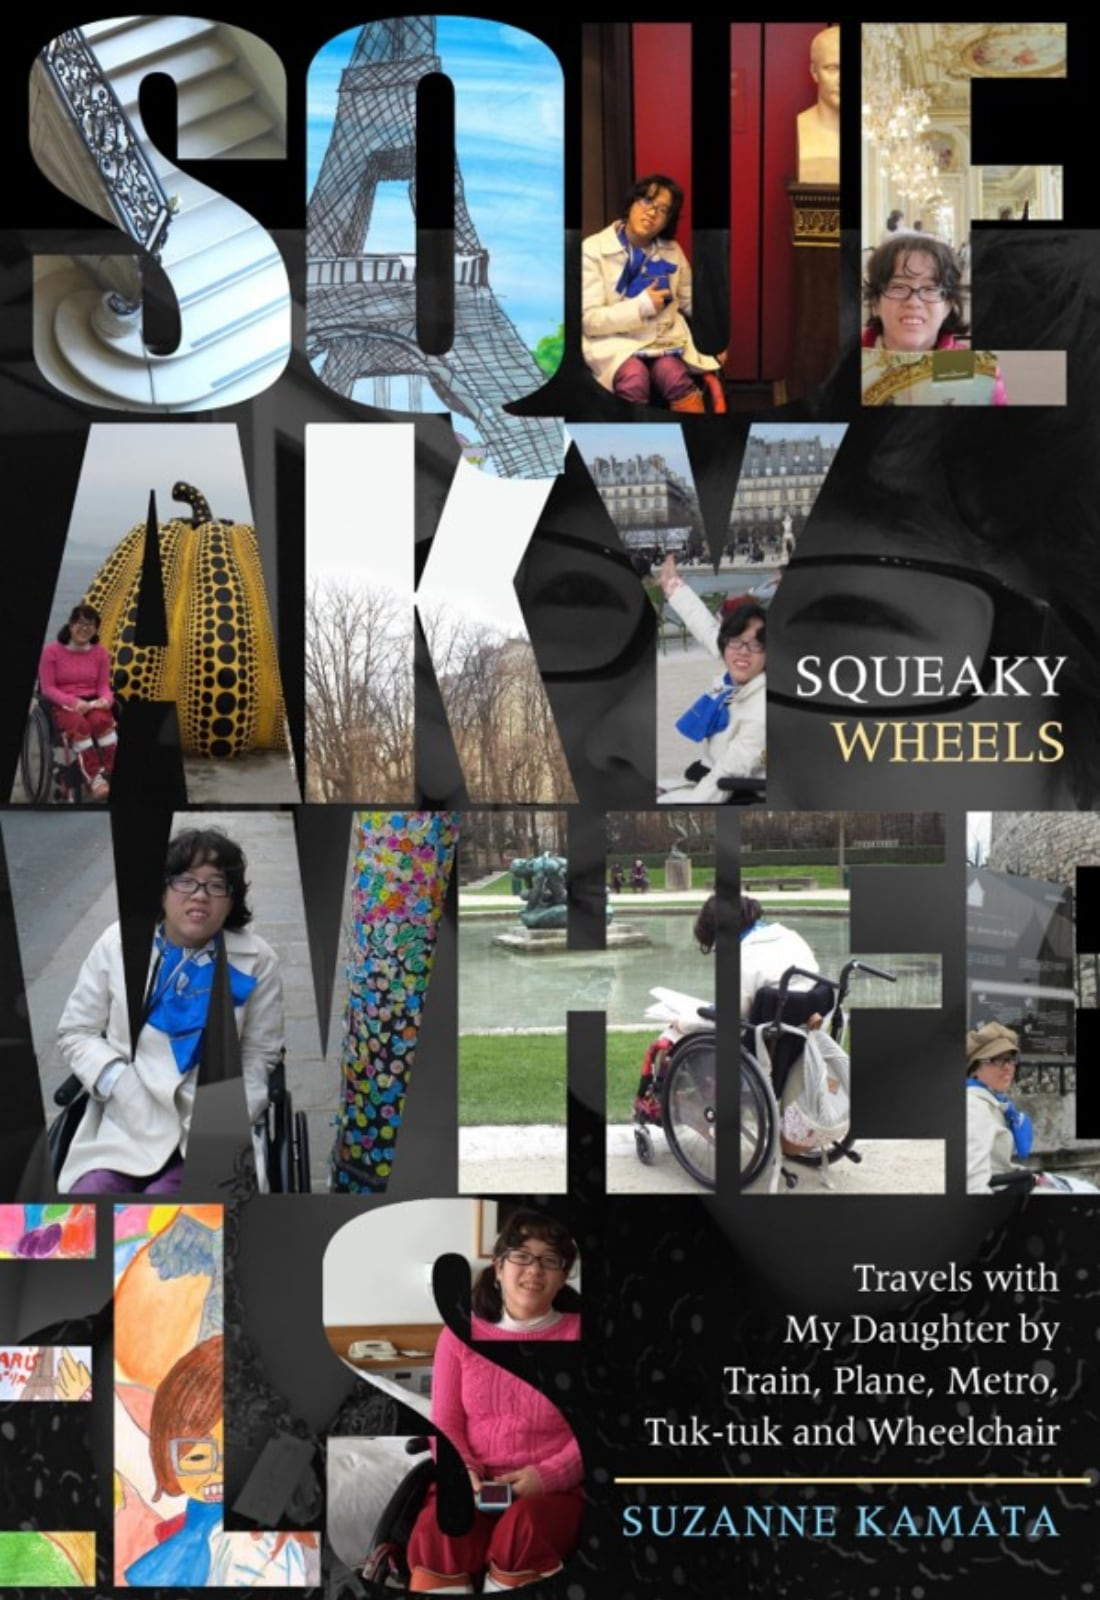 Squeaky Wheels Book Suzanne Kamata on her mother-daughter travel memoir